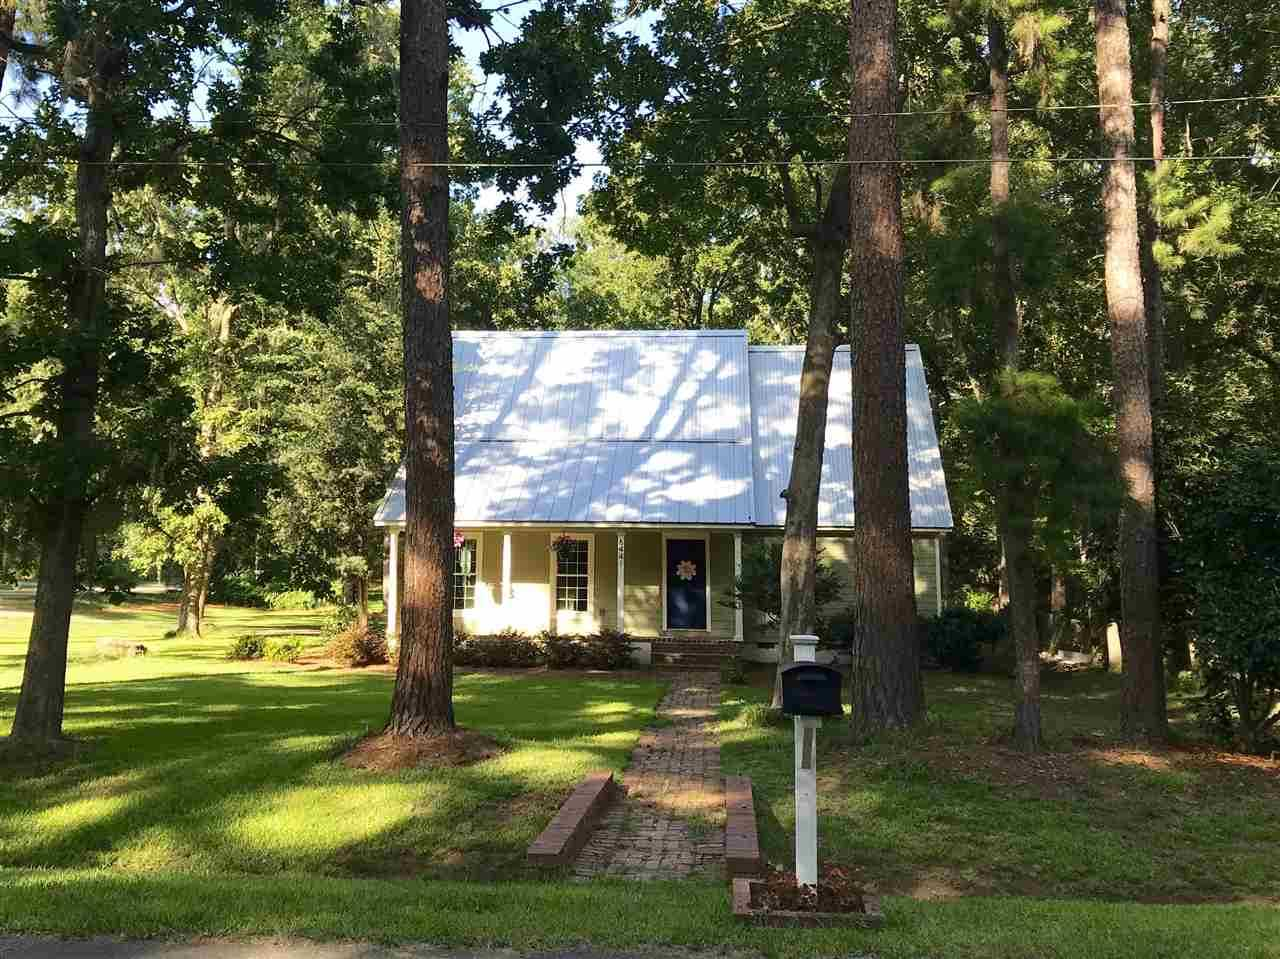 6441 Jet Pilot Tallahassee, FL 32309 in Killearn Acres Photo 1